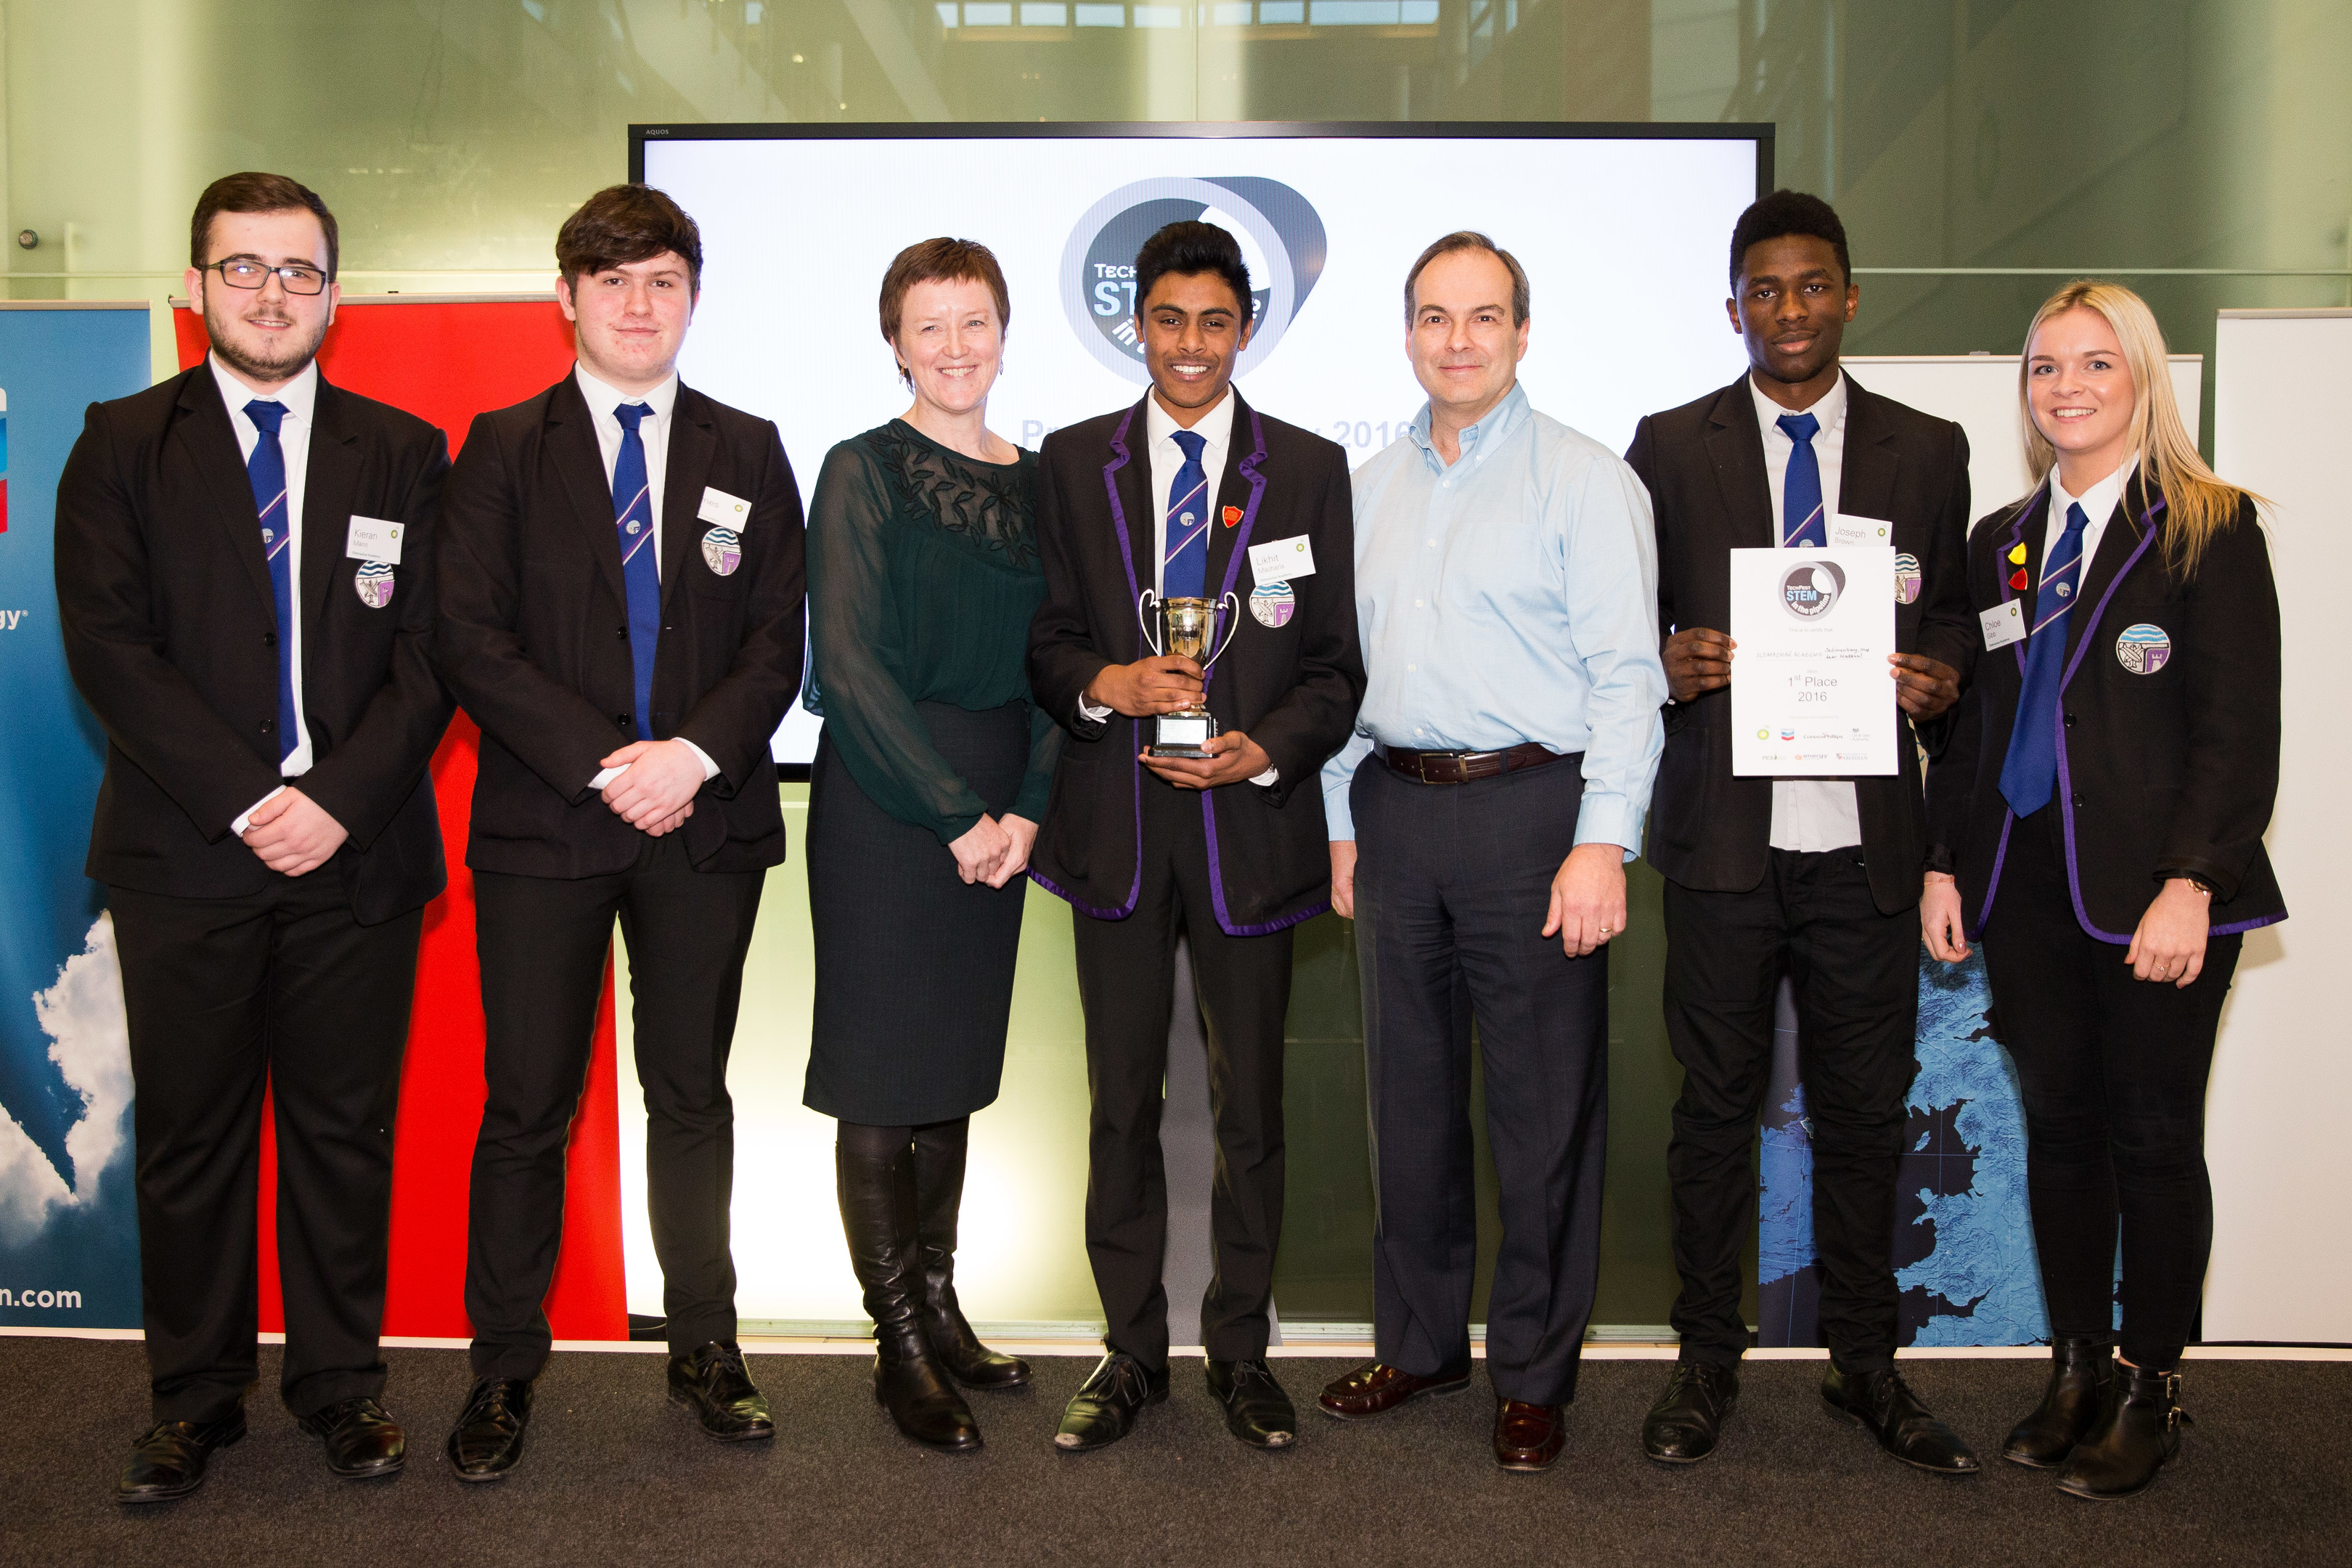 Oil and gas challenges to see winning STEM solutions from Aberdeenshire students